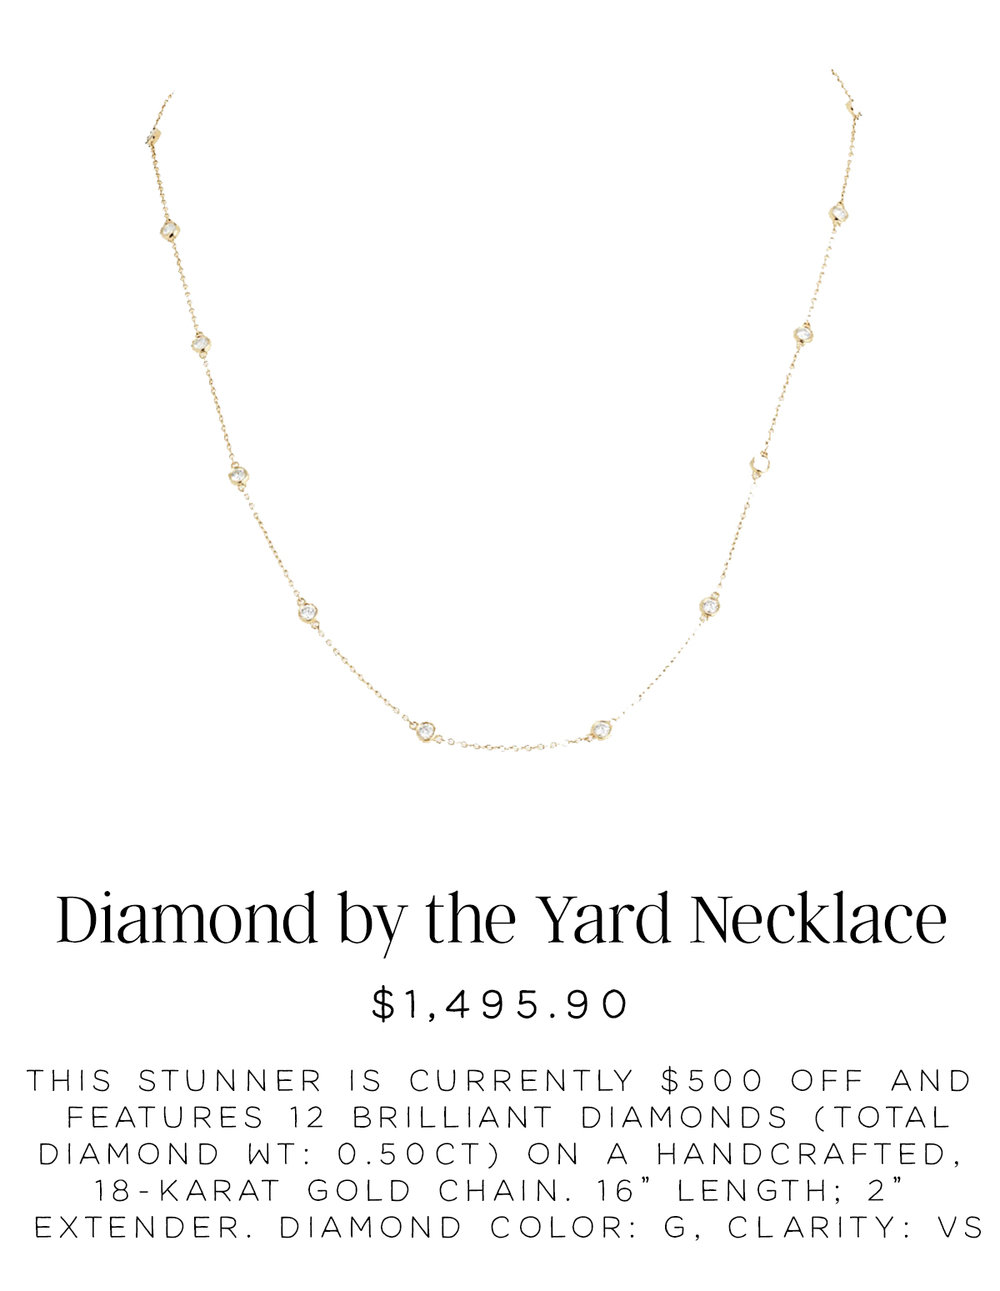 nordstrom-anniversary-sale-diamond-necklace.jpg